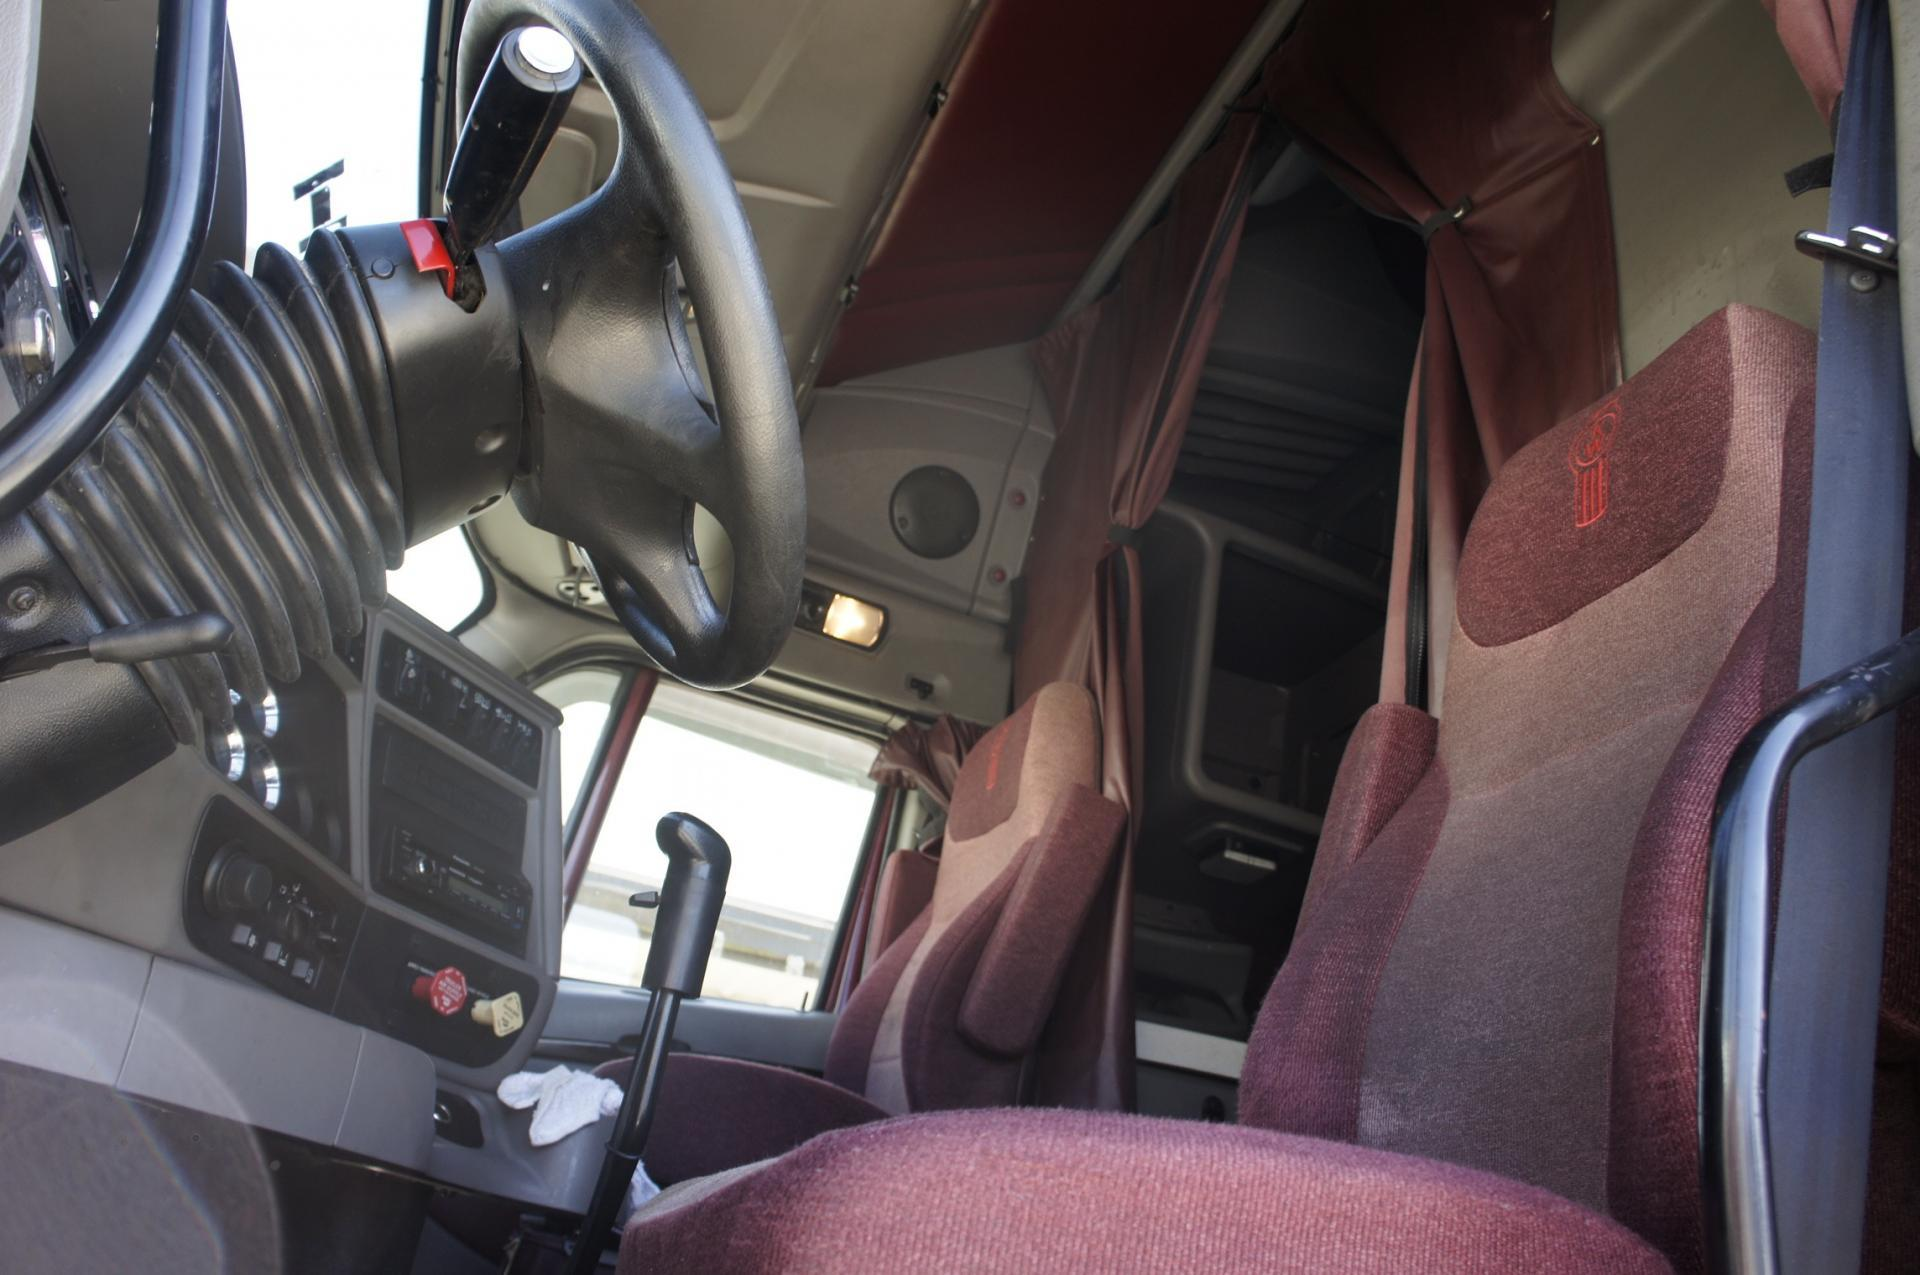 Used 2013 Kenworth T700 for sale-59093998